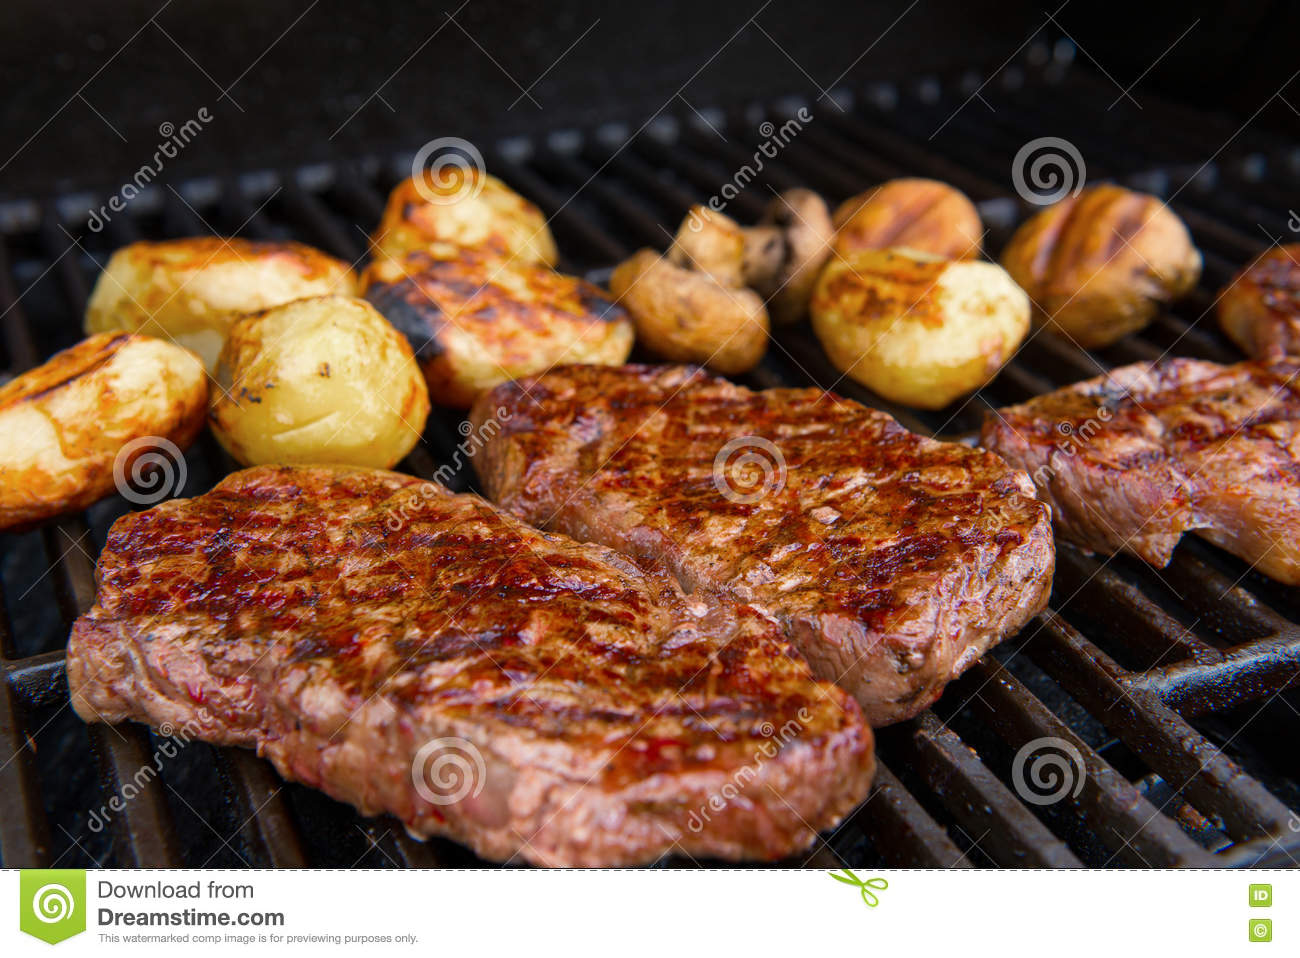 Discussion on this topic: Grilled Steak and Potatoes with Mushrooms, grilled-steak-and-potatoes-with-mushrooms/